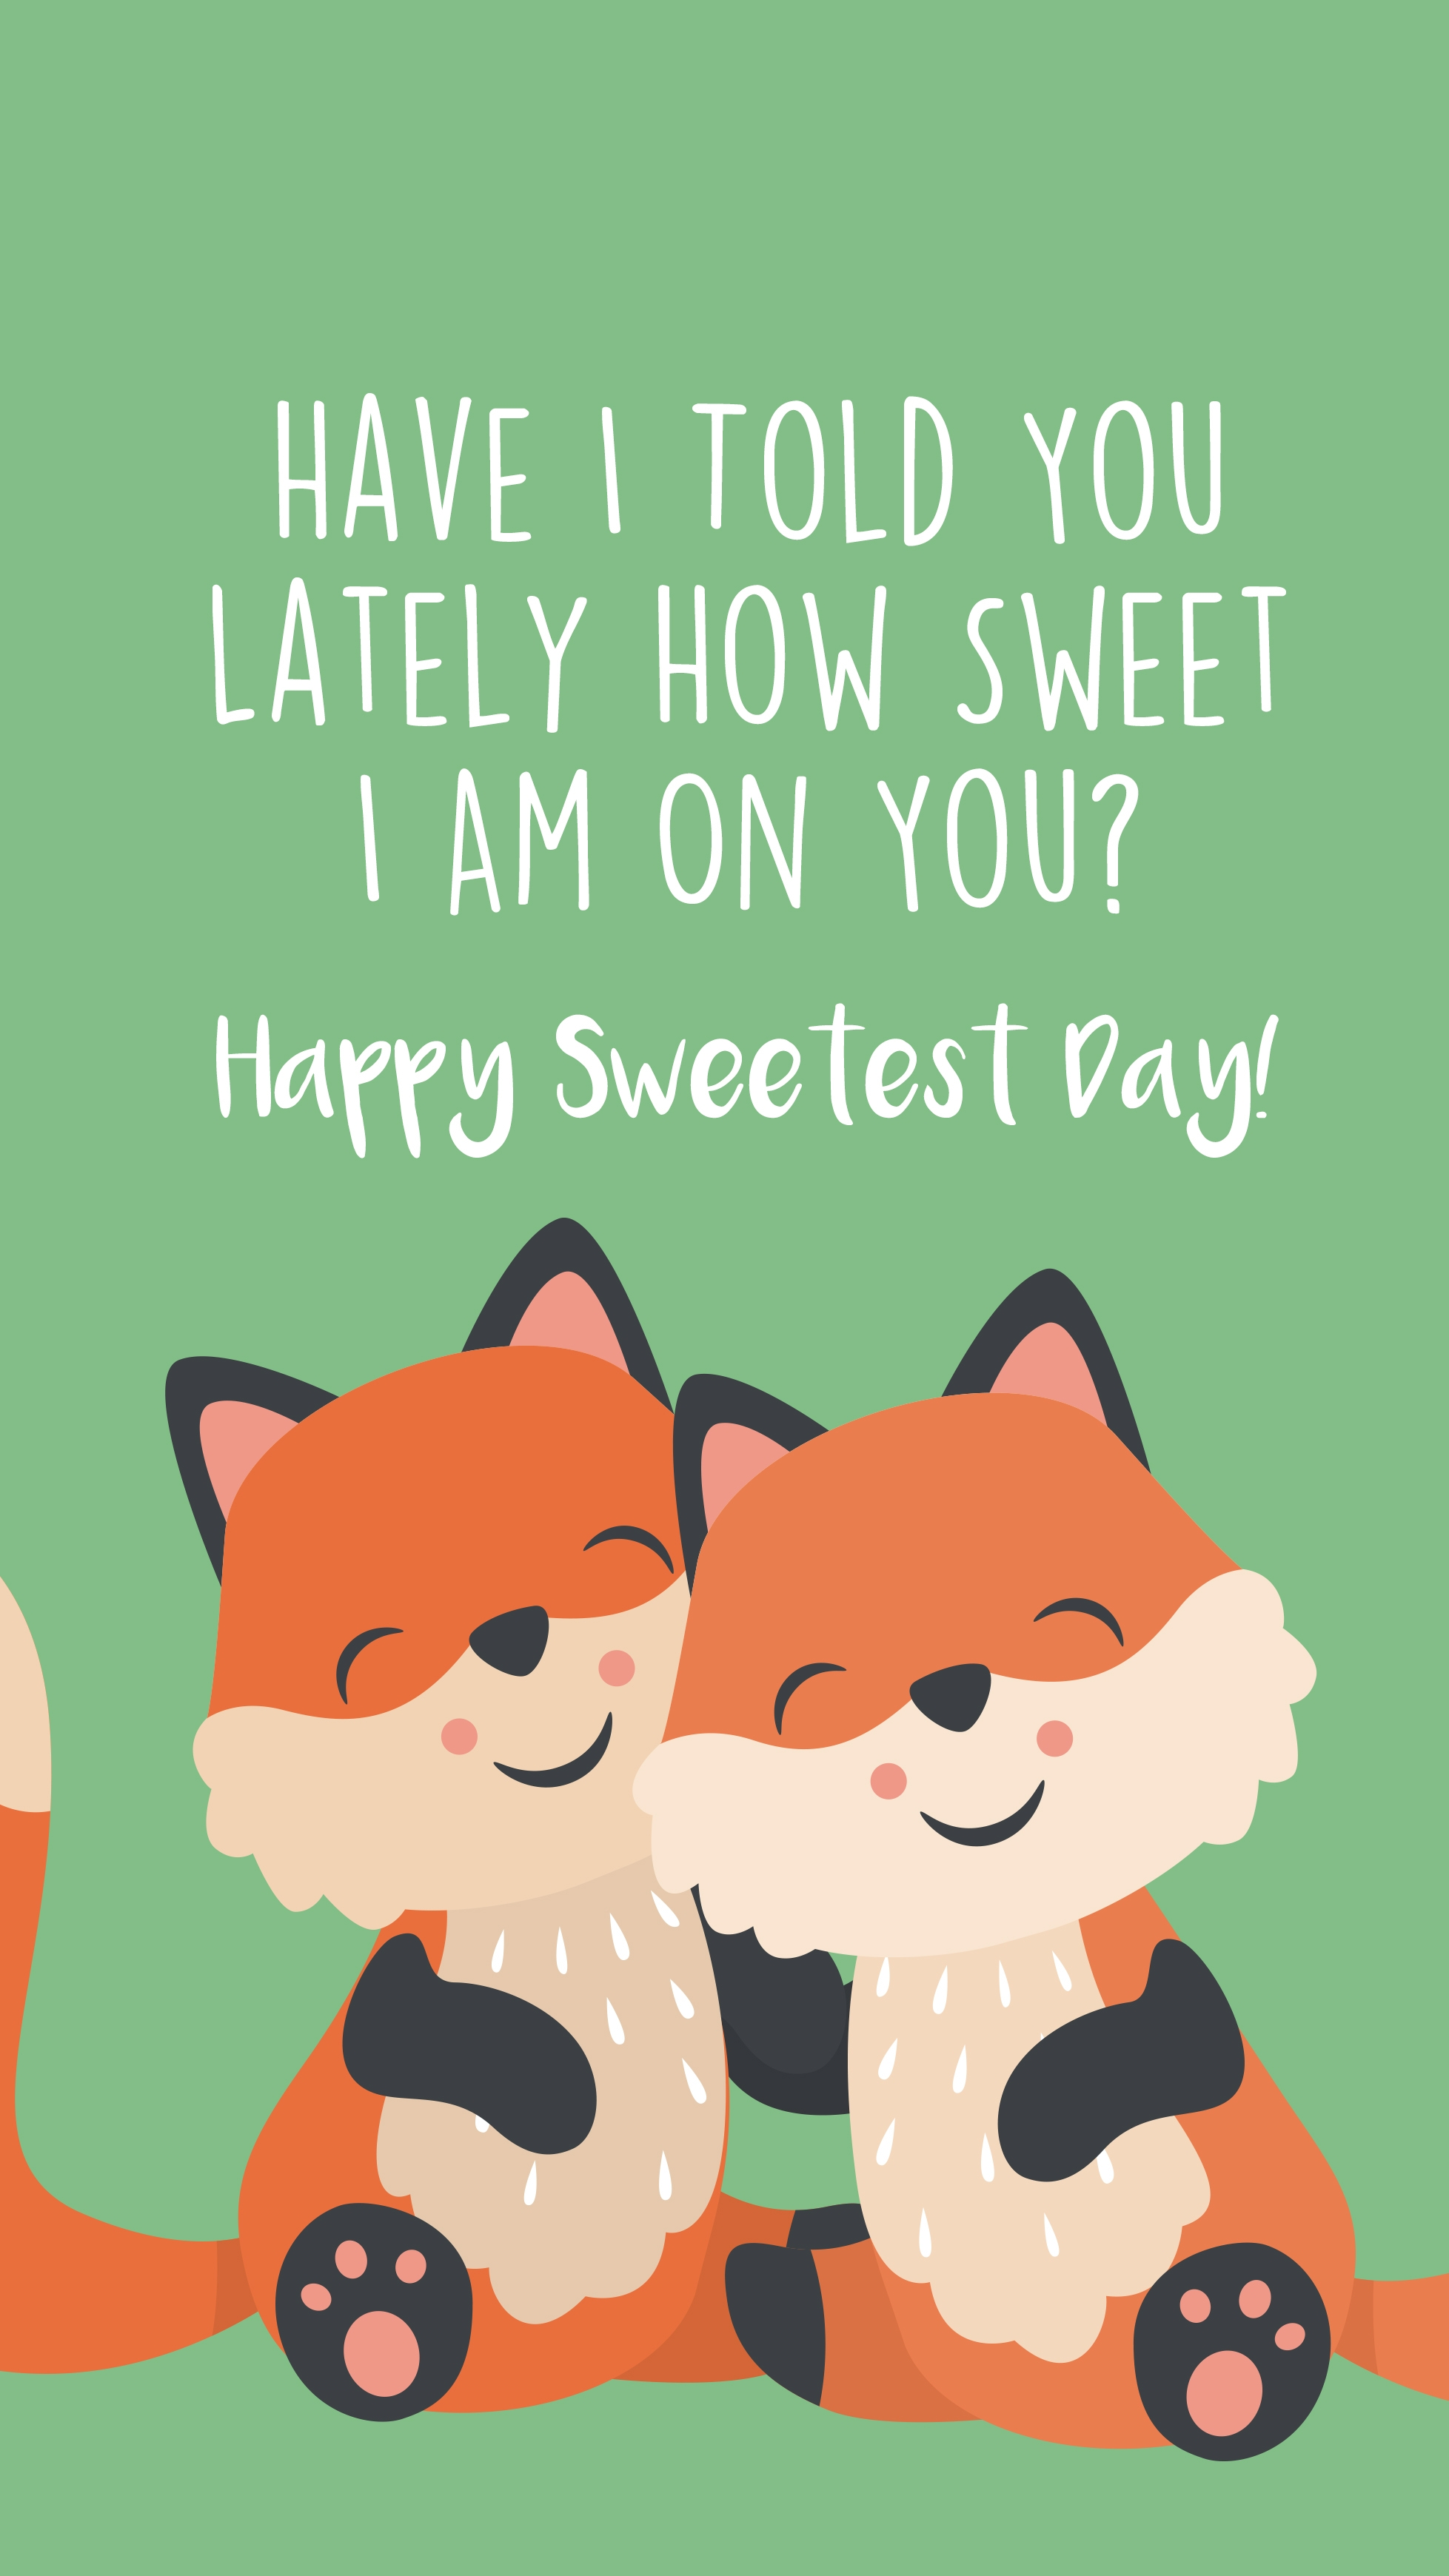 Sweetest Day III